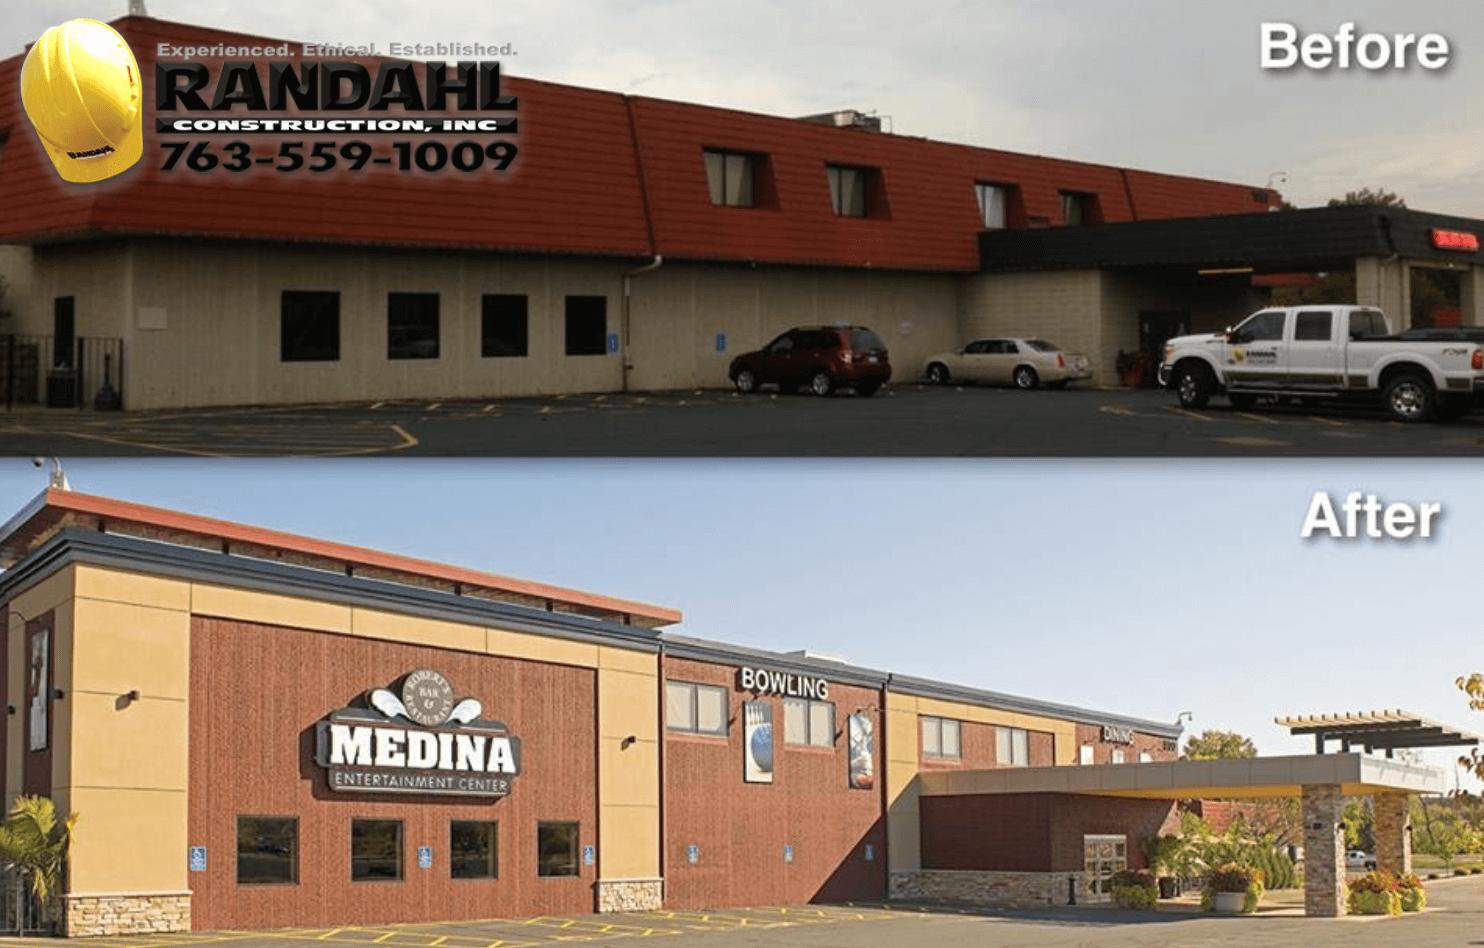 Construction And Remodeling Companies Exterior exterior commercial remodeling - randahl construction, inc. mn